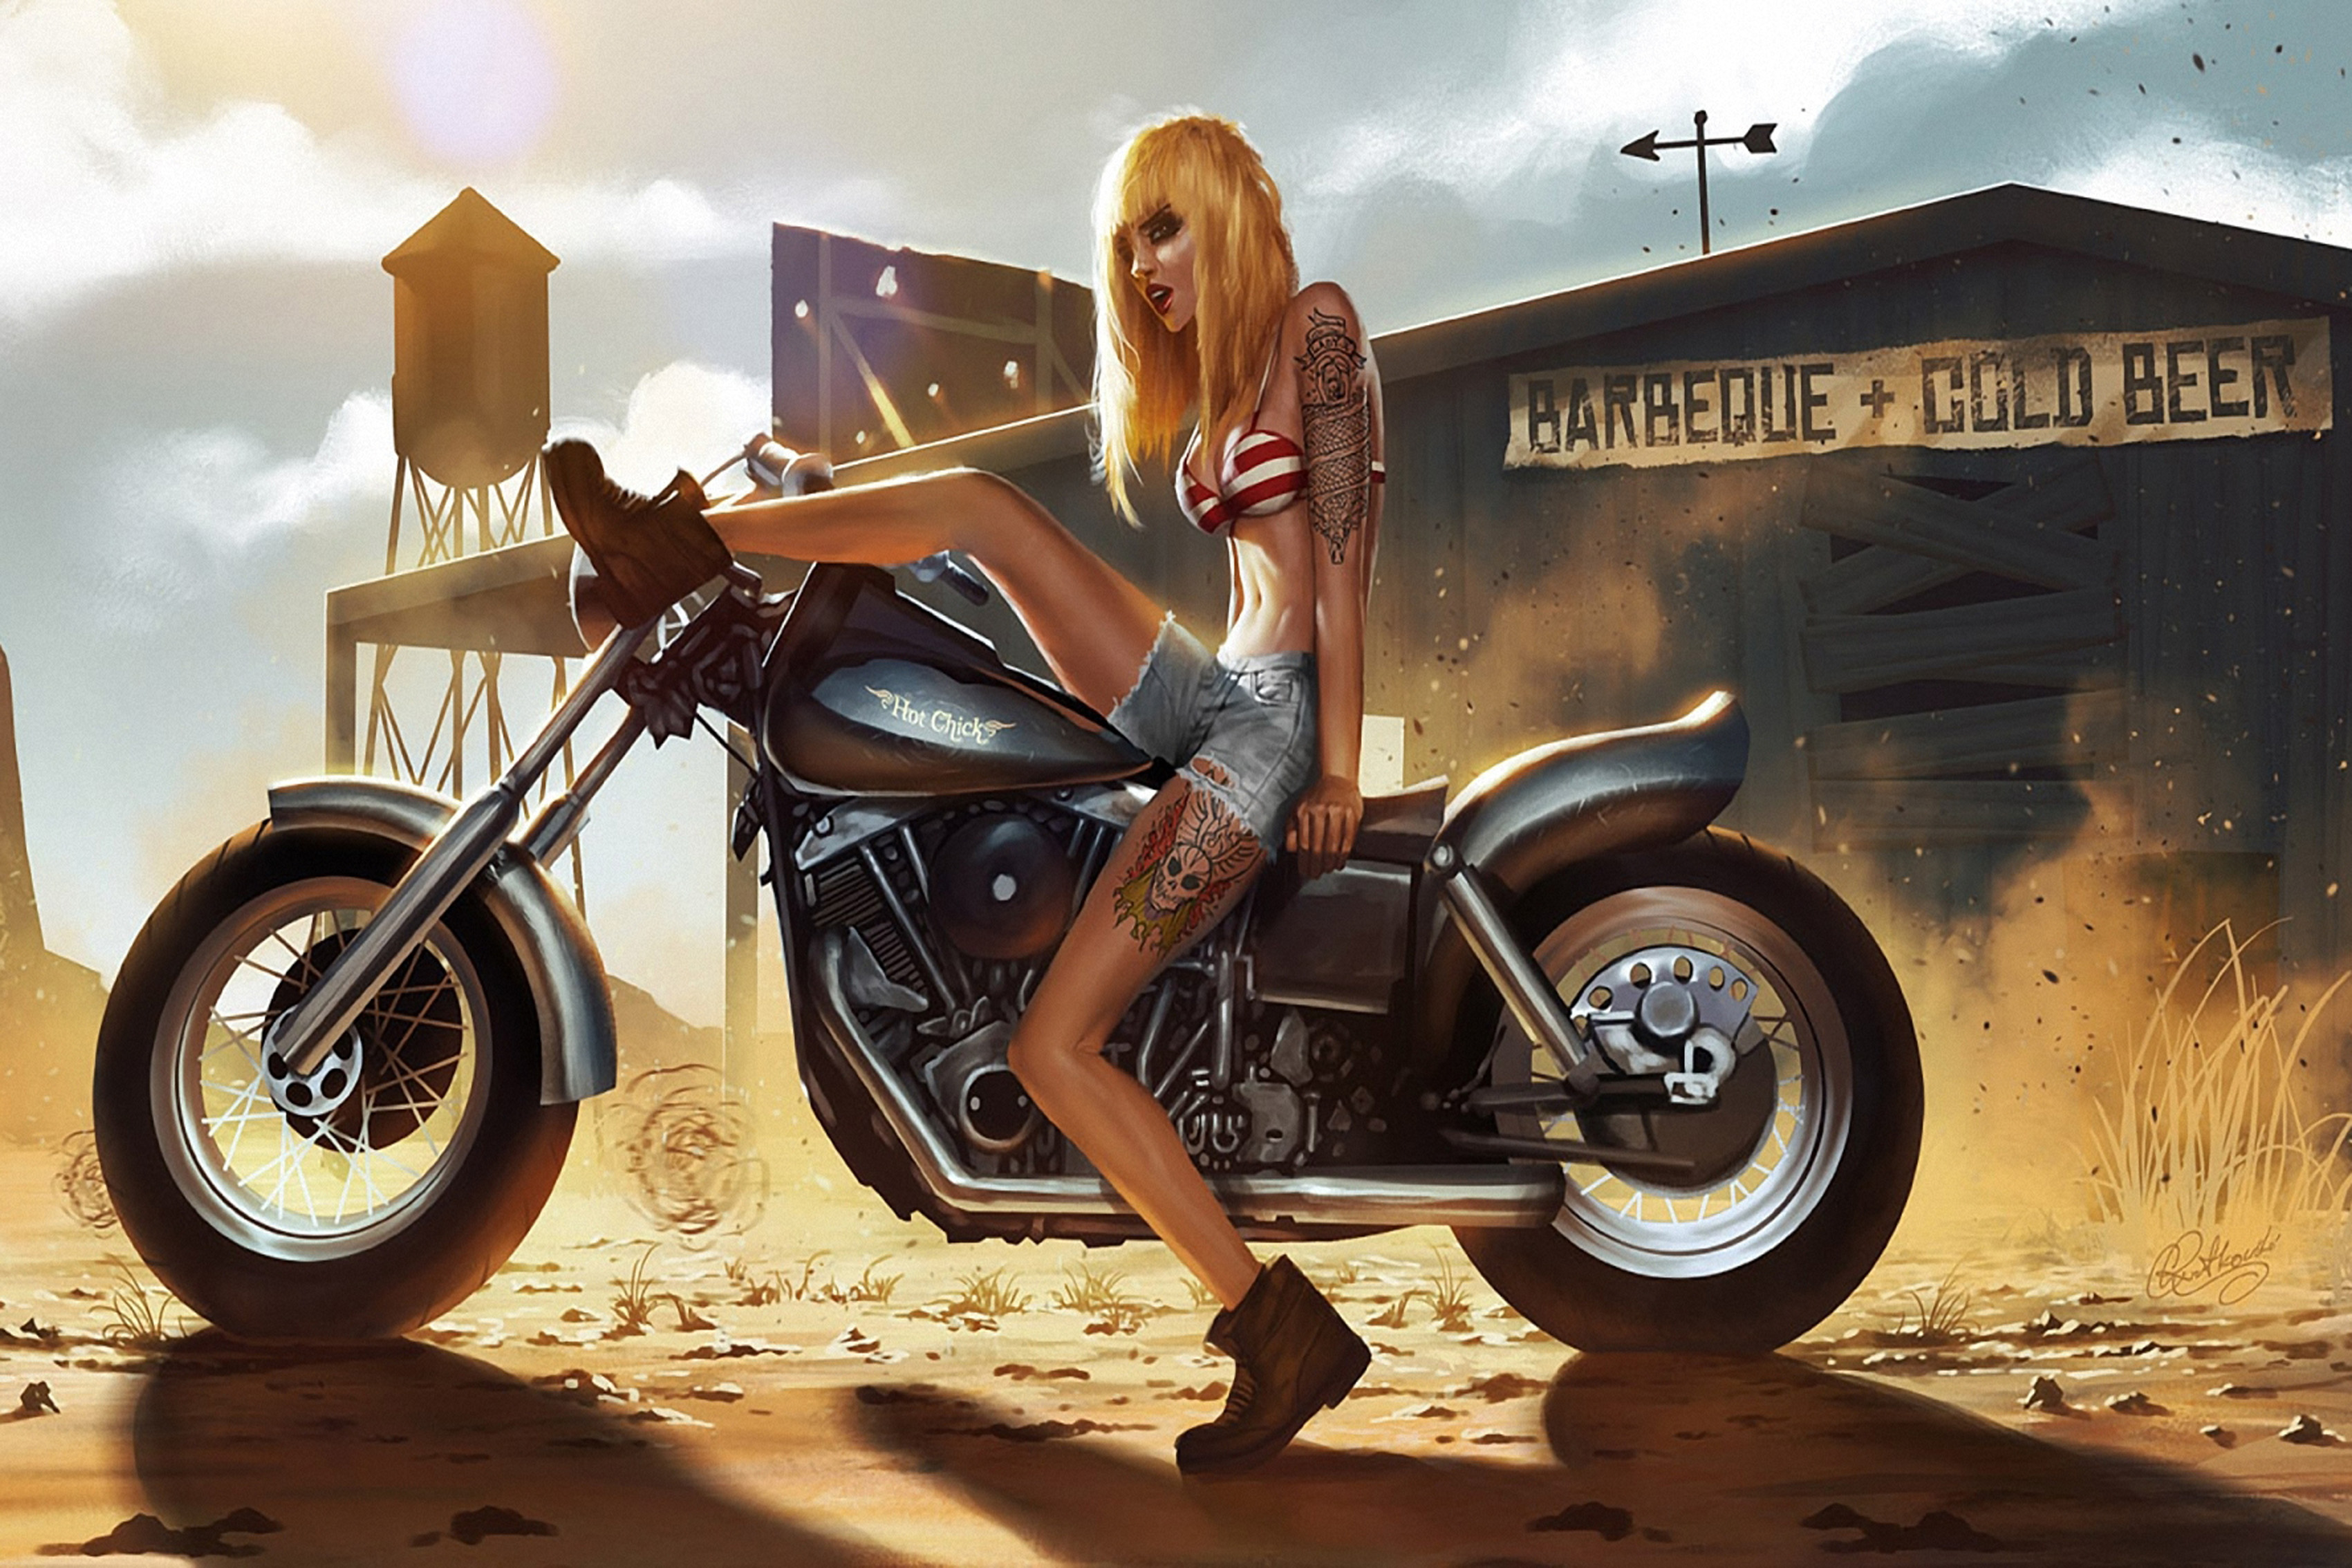 Motorcycle with biker tattoo - Home Decoration Art Girl Motorcycle Tattoo Dust Sand Anger Women Females Sexy Babes Mood Biker Silk